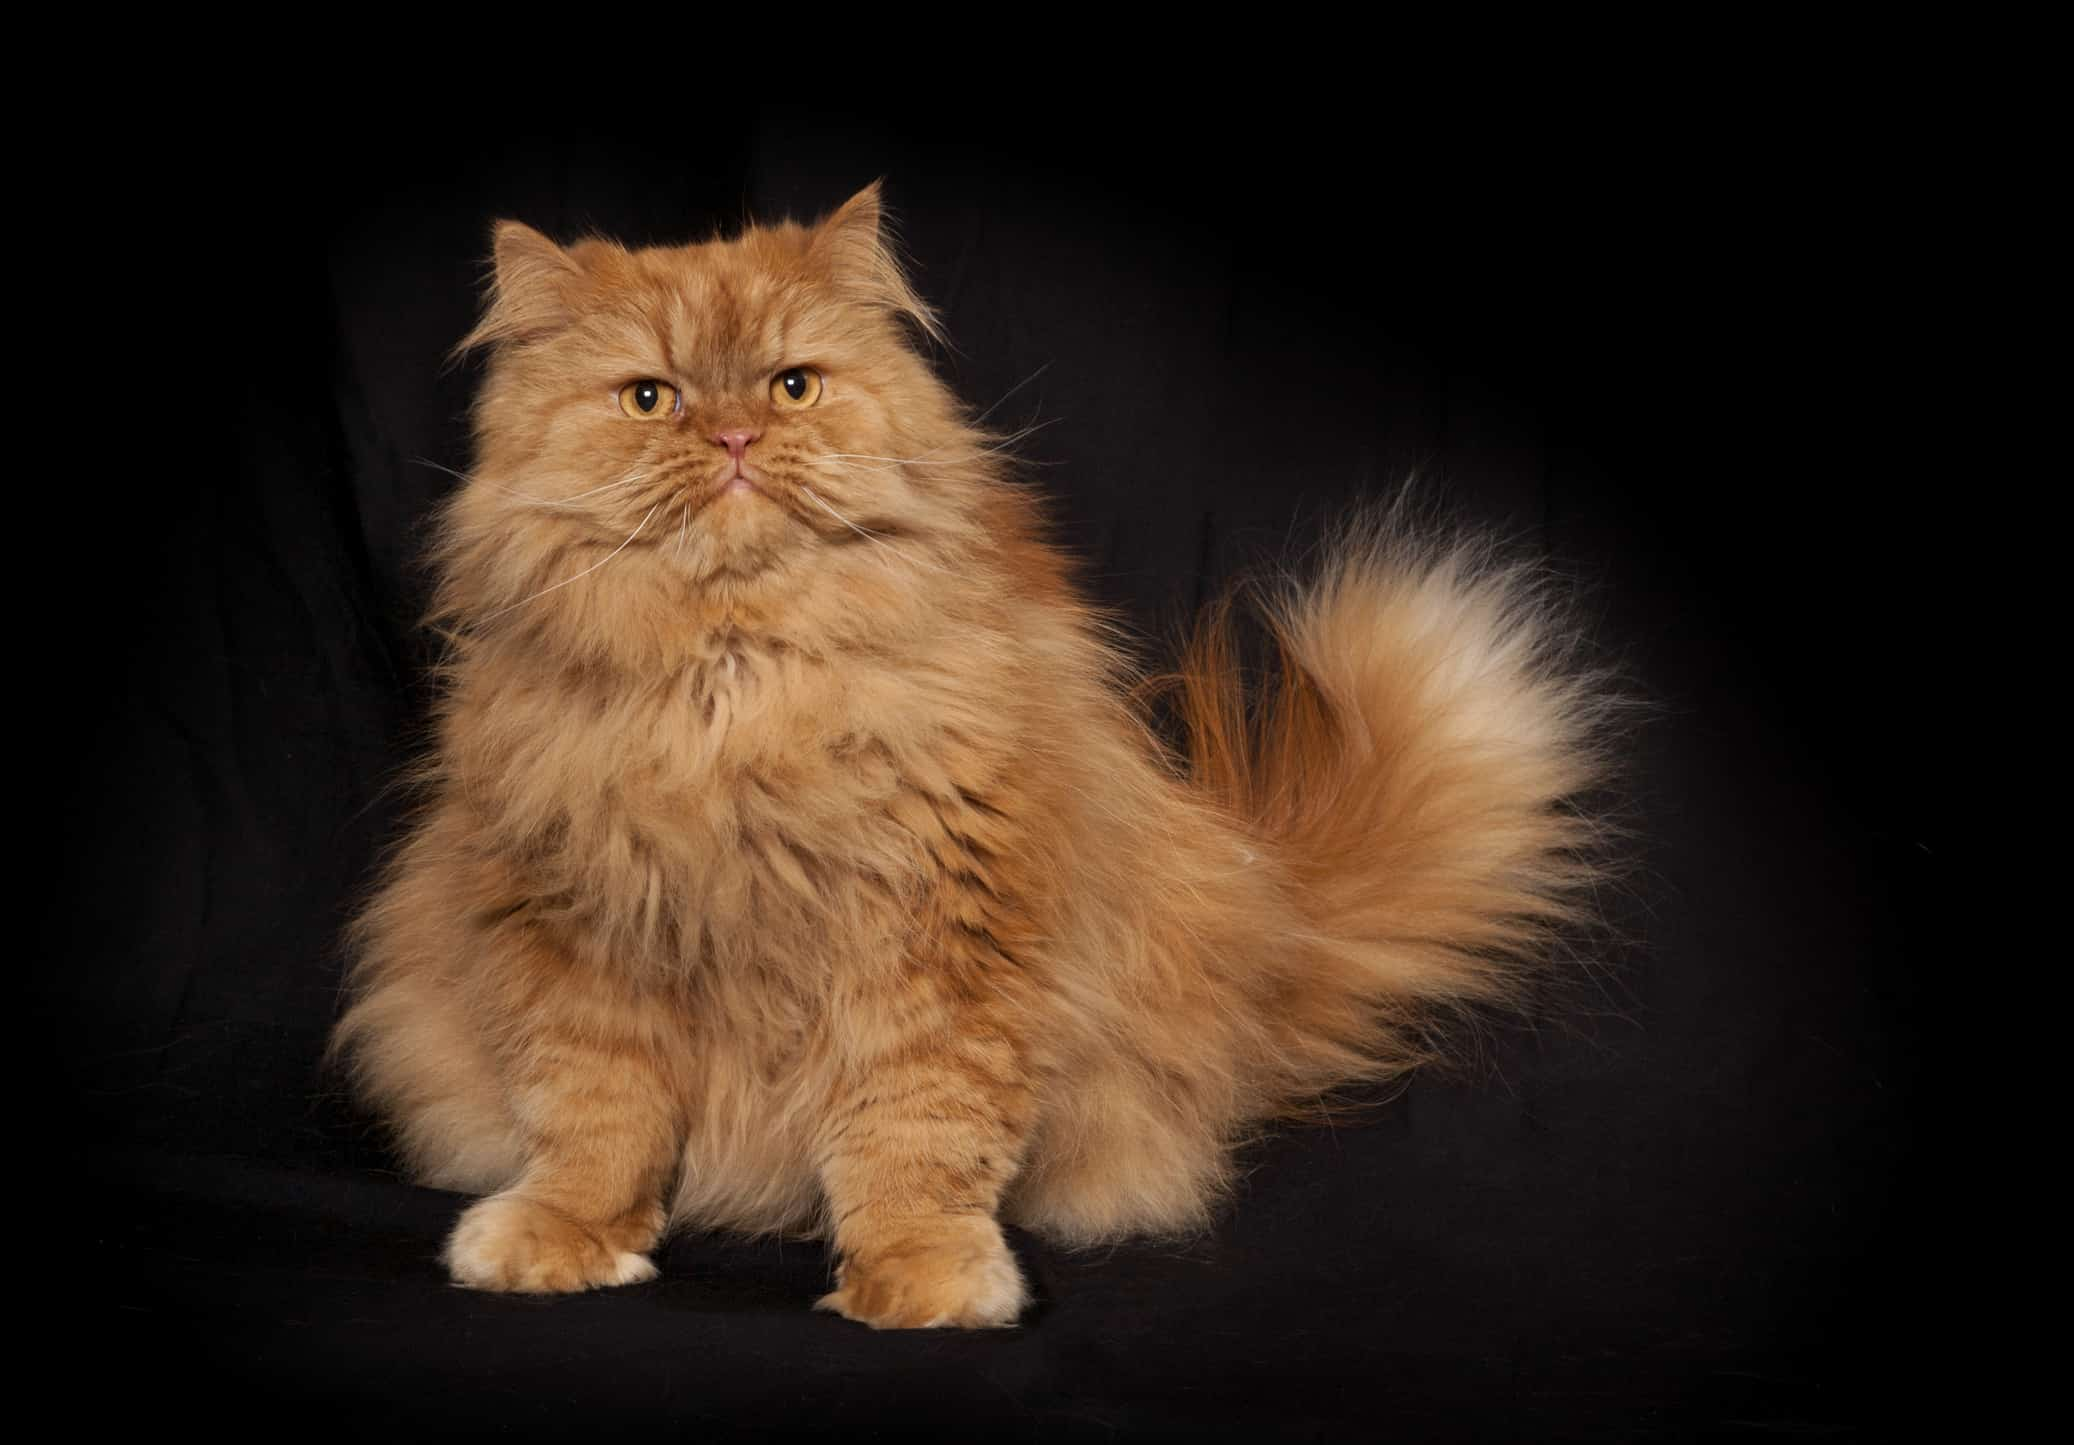 An orange cat that suffers from pet obesity because its owner gives too many treats